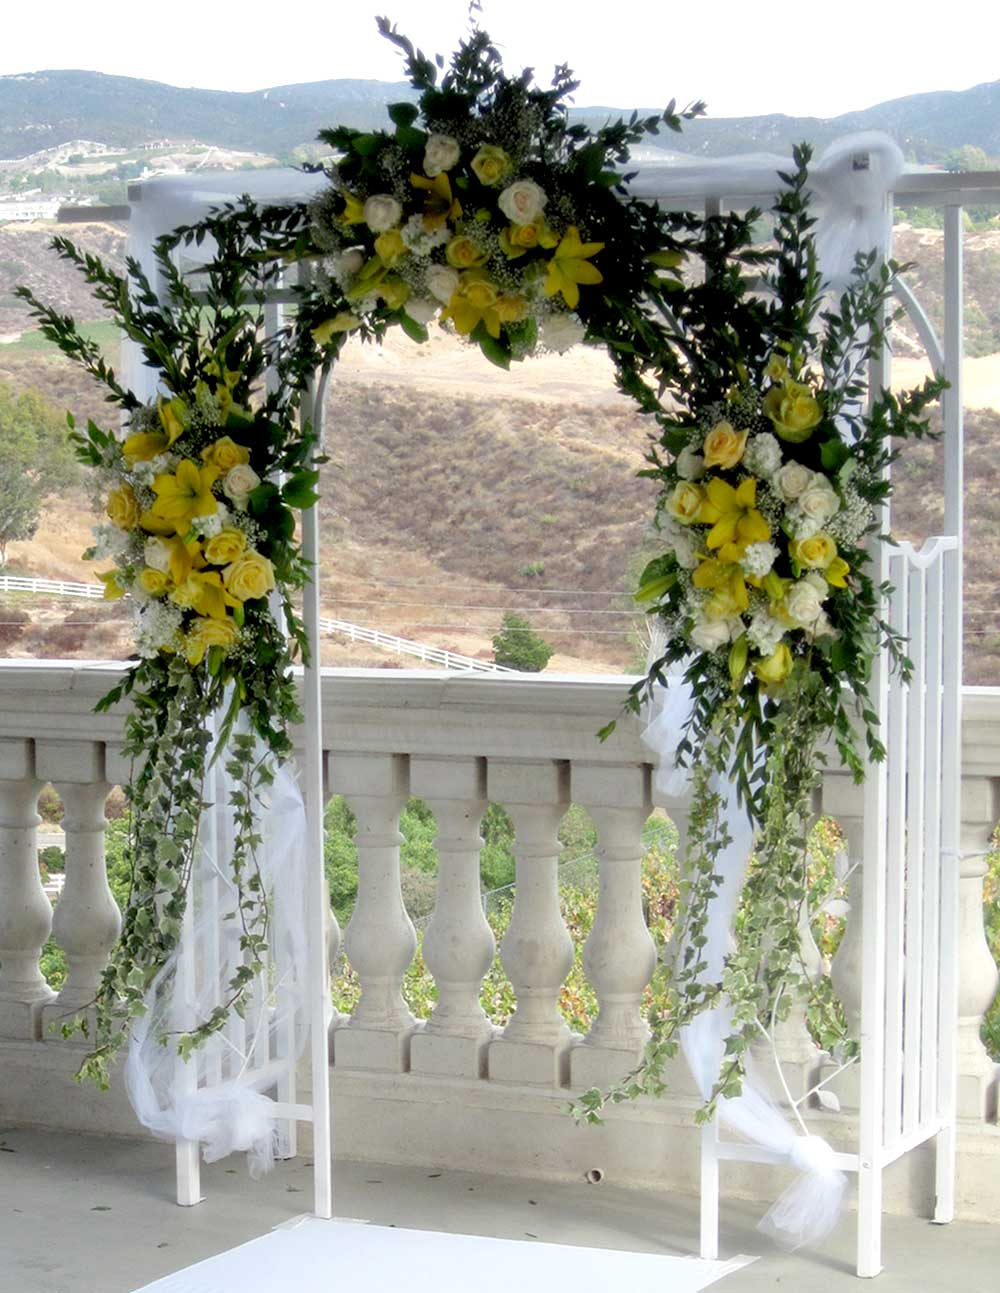 Archway with Yellow Flowers